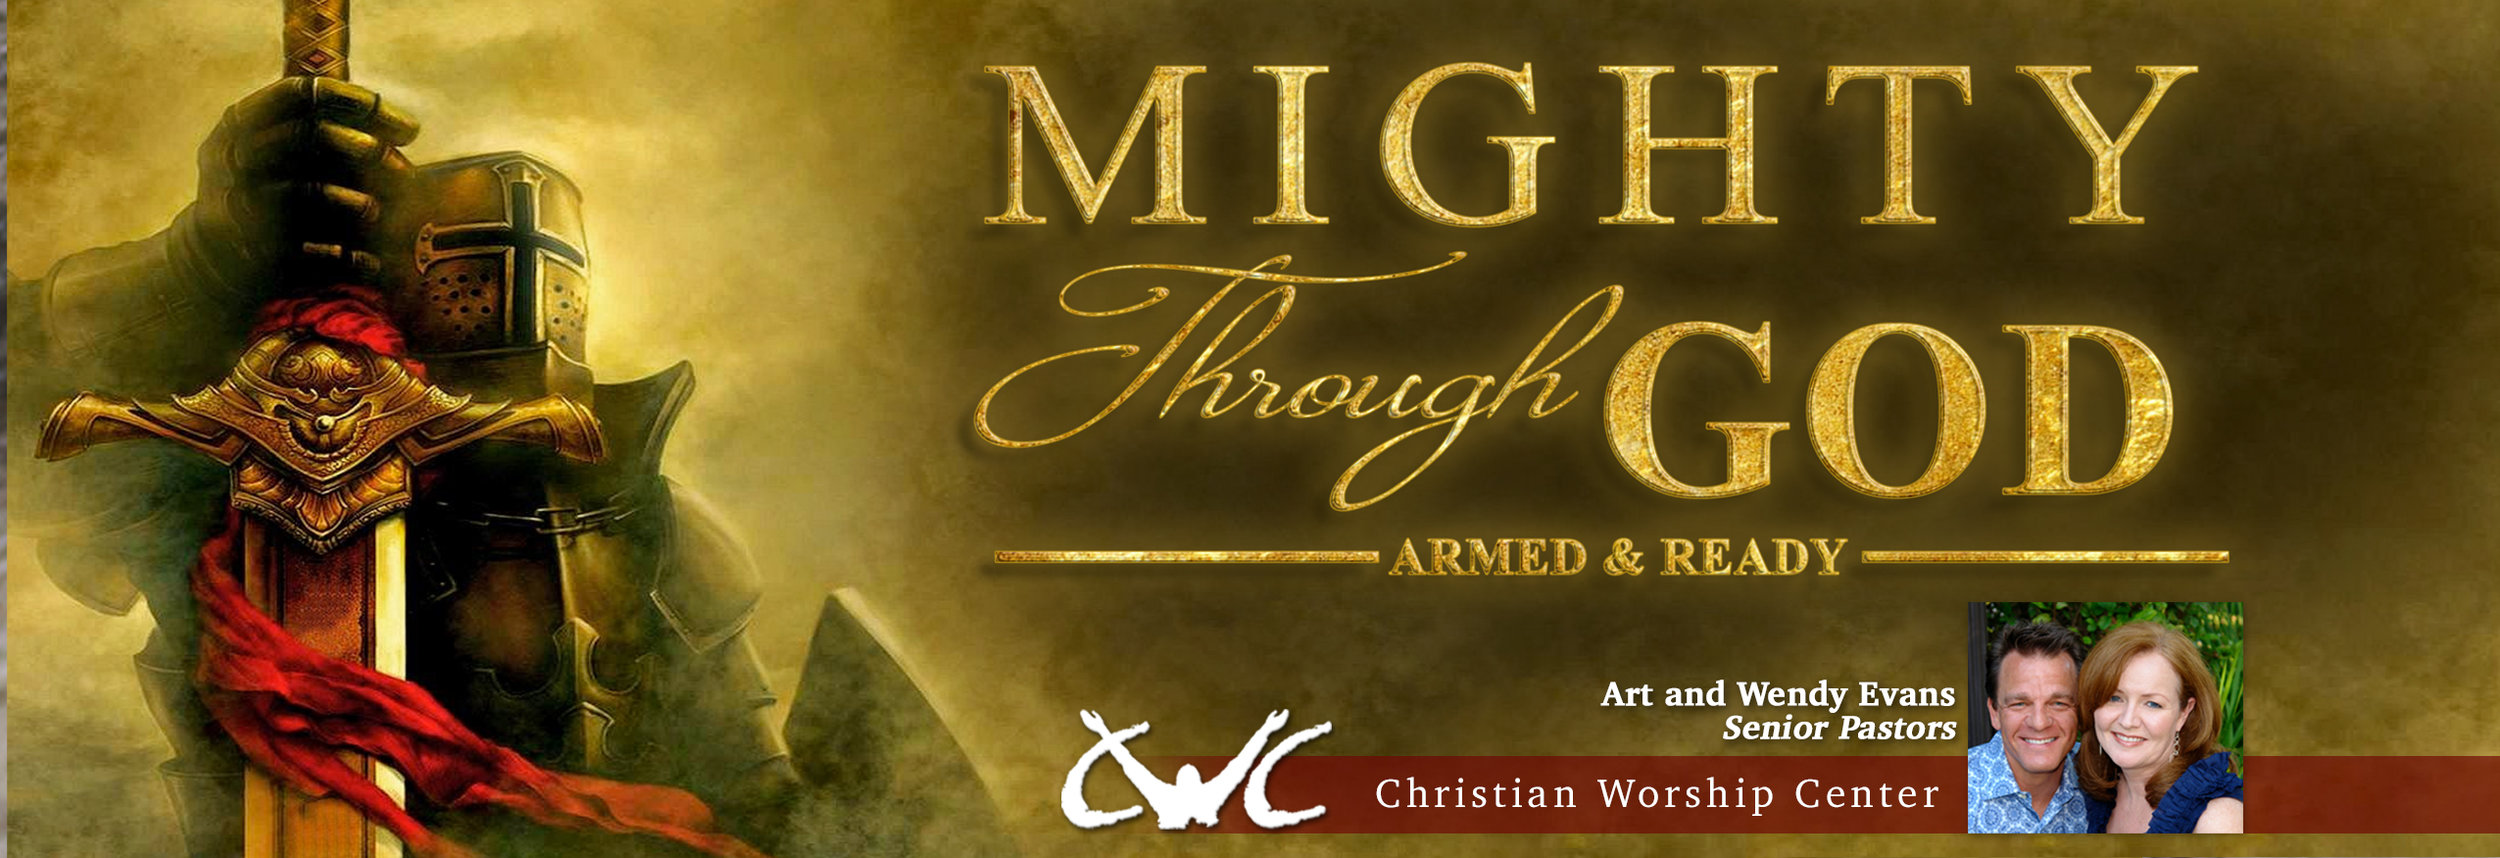 Mighty Through God Facebook and Blog Banner3.jpg